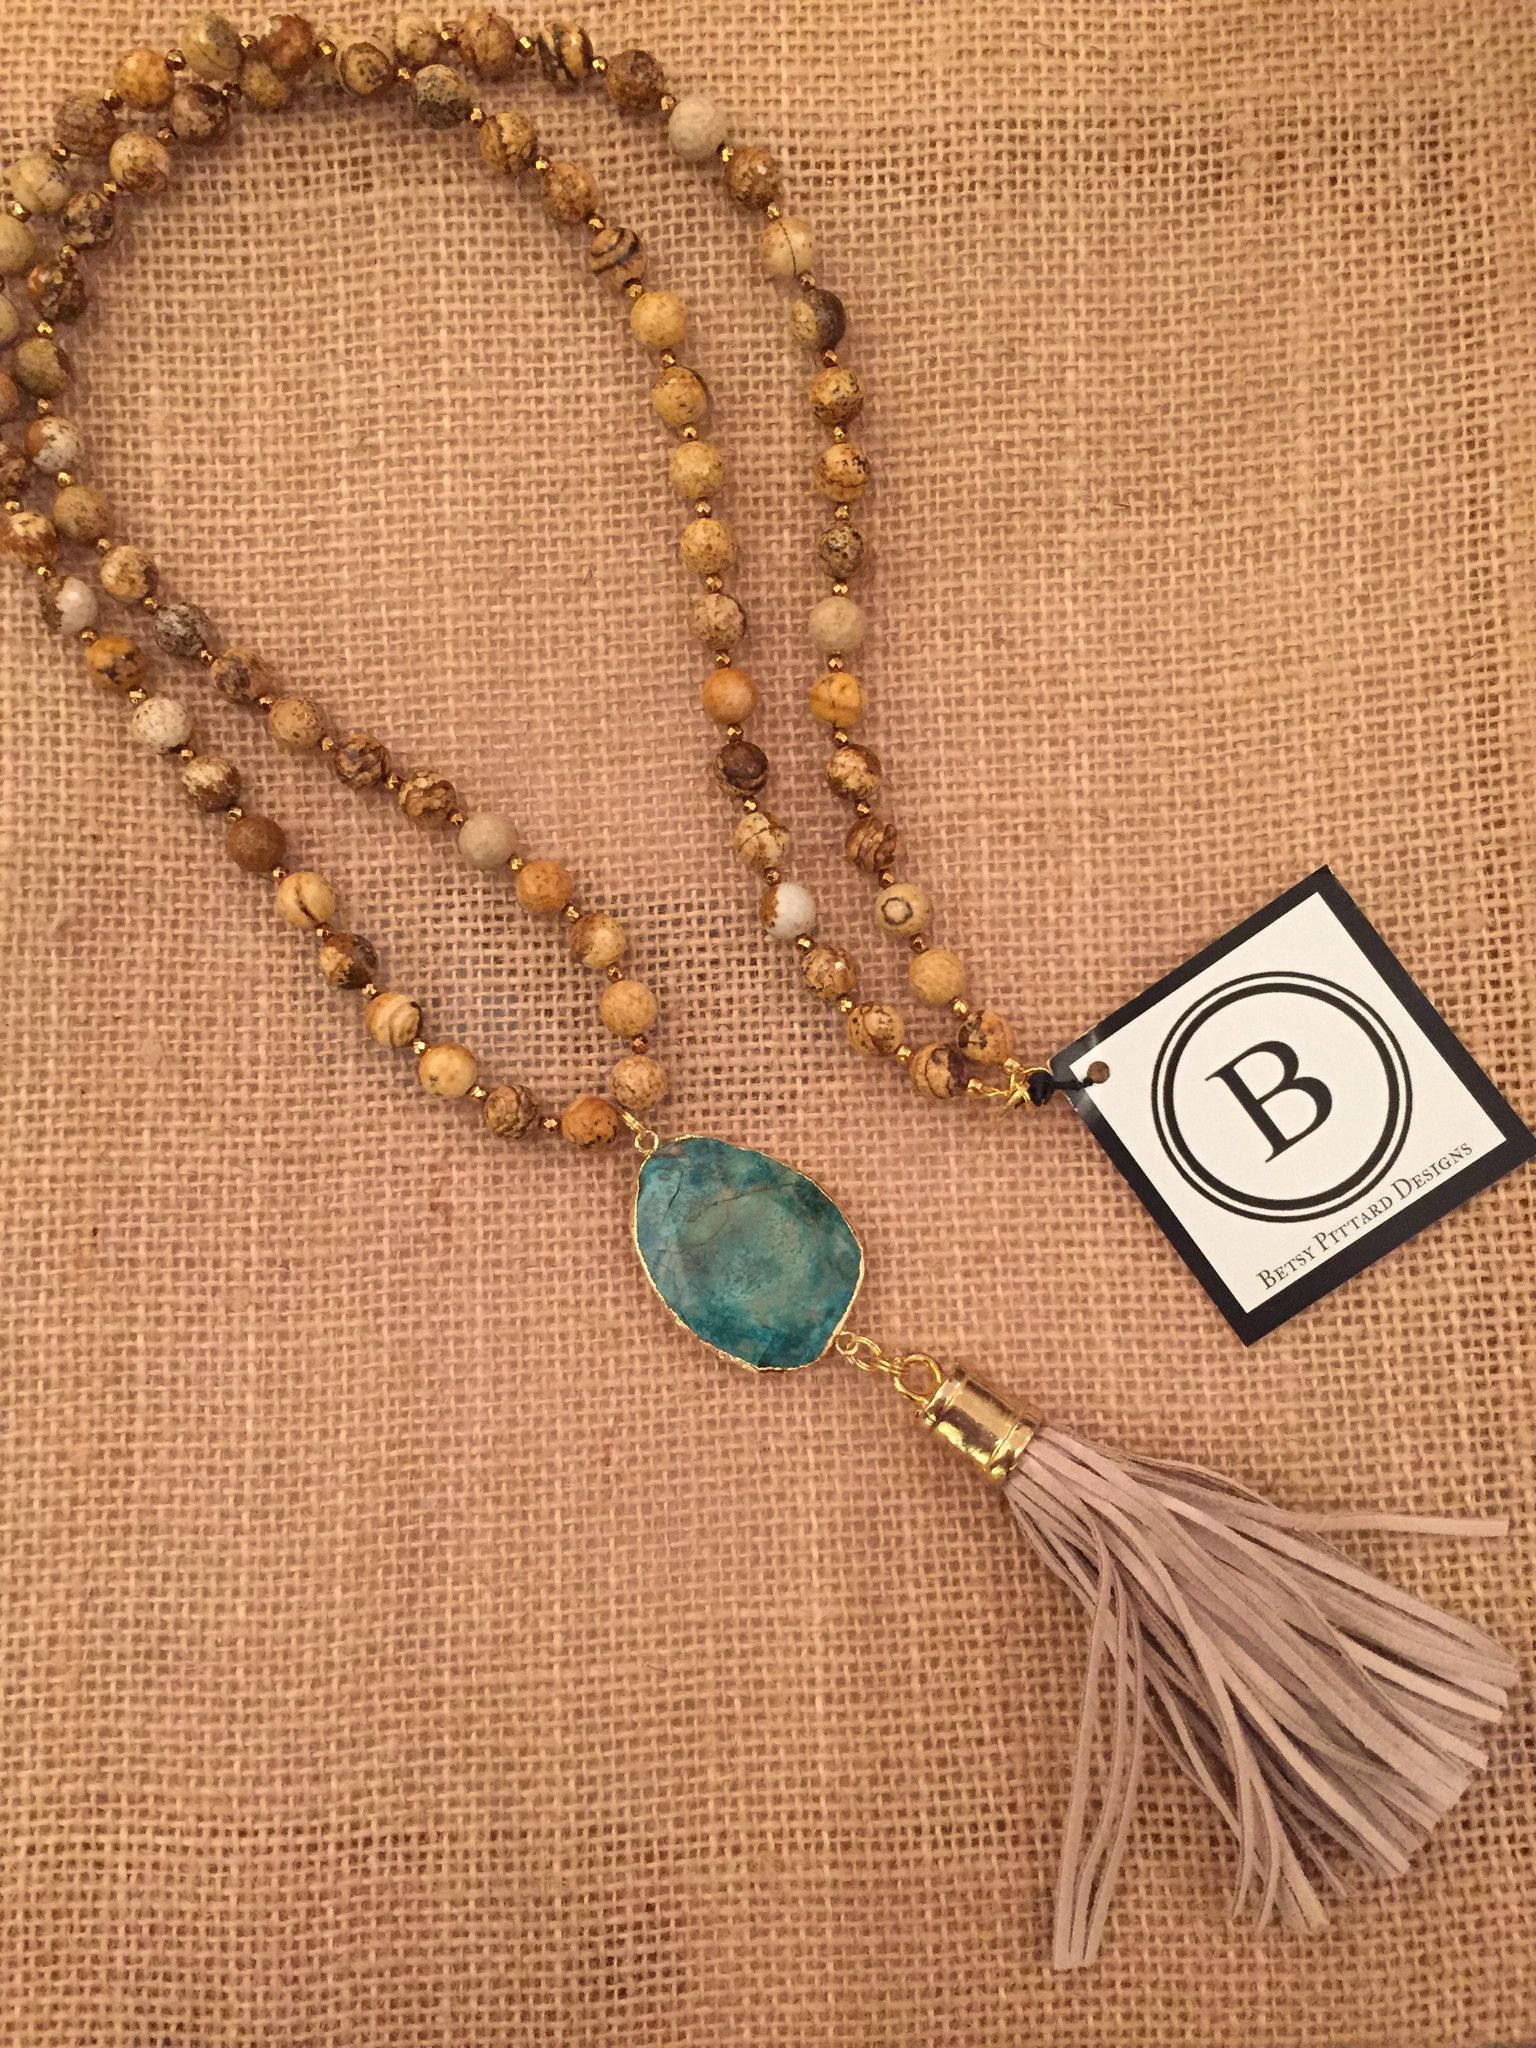 betsy pittard brown beads with turquoise stone and leather tassel necklace biju pinterest. Black Bedroom Furniture Sets. Home Design Ideas